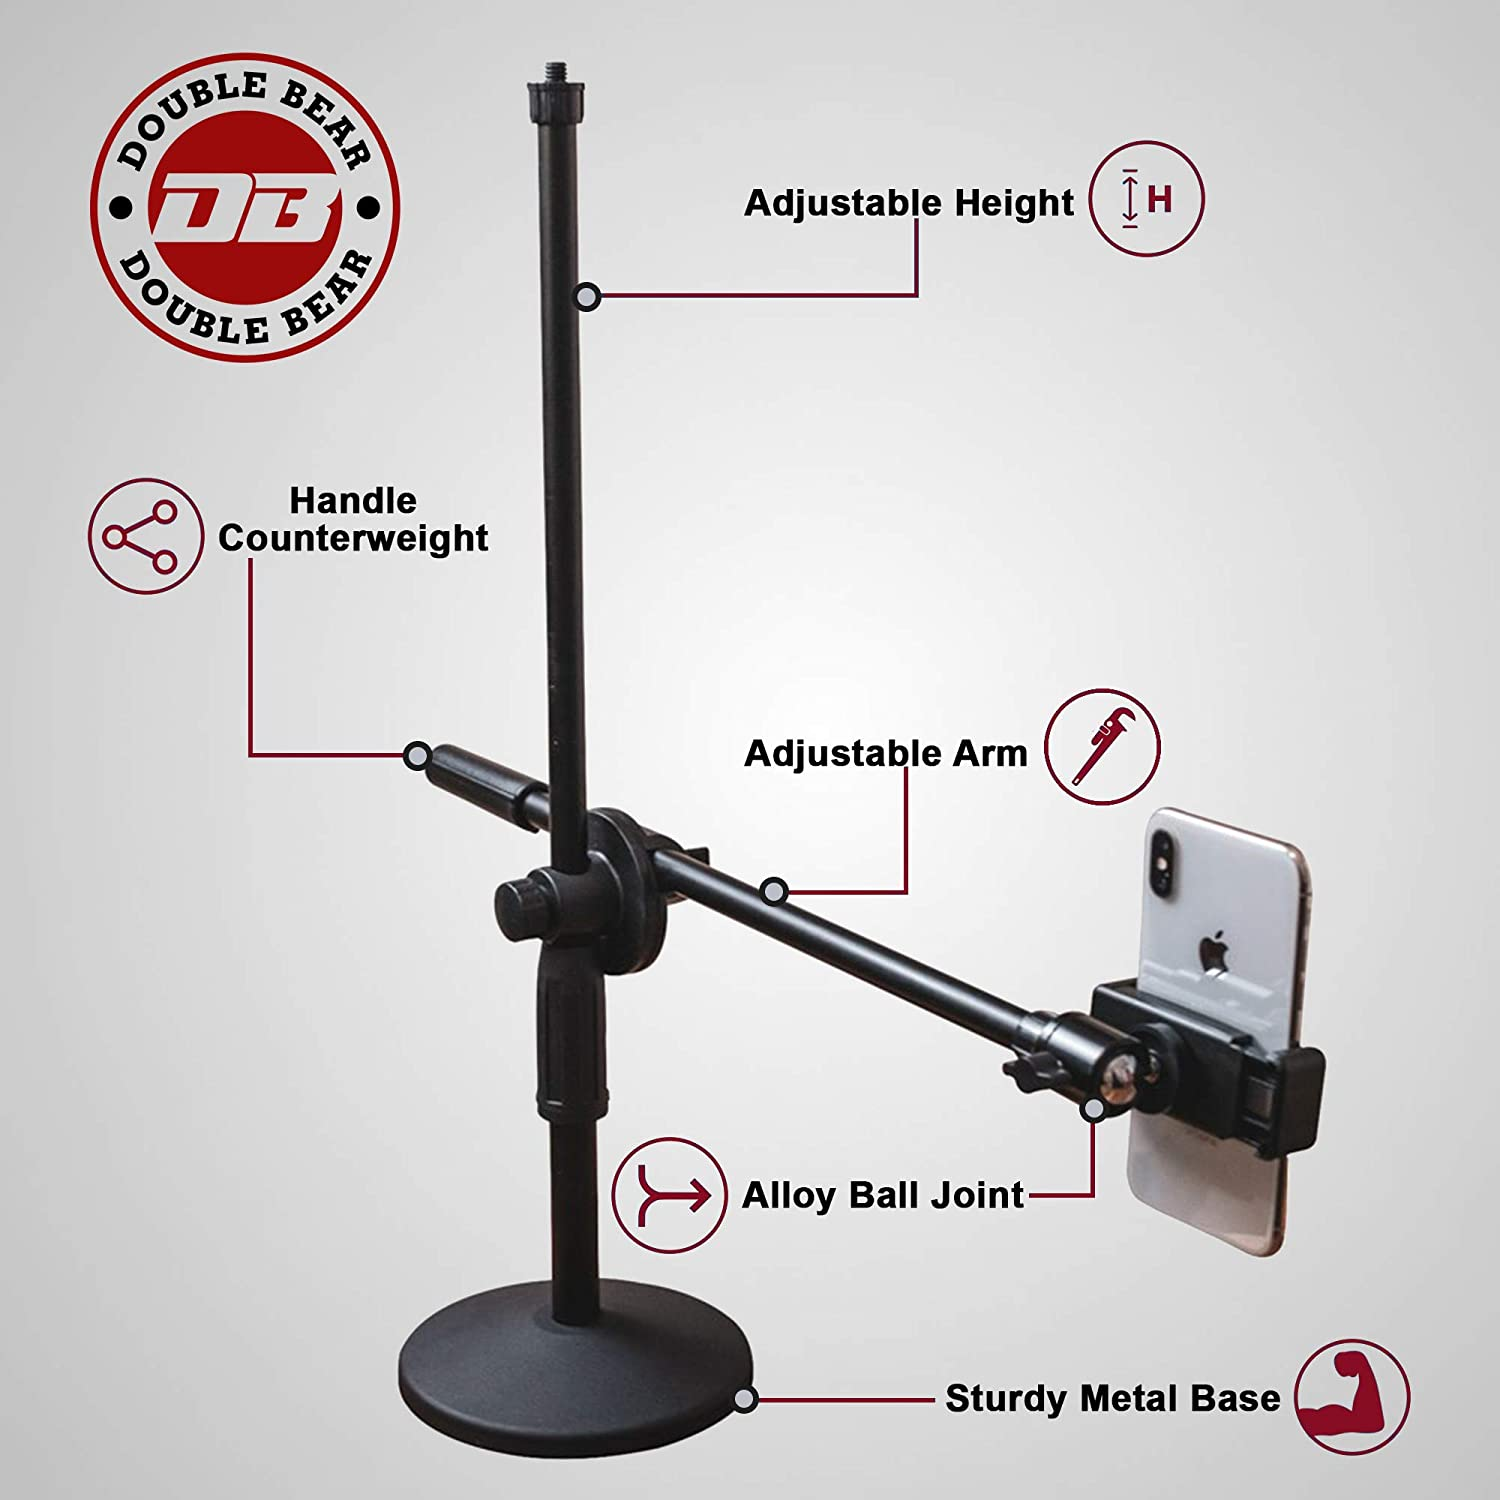 Double Bear Overhead Phone Stand – Phone Mount for Filming, Crafting, Baking, Drawings, Recording – Design for Various Purposes